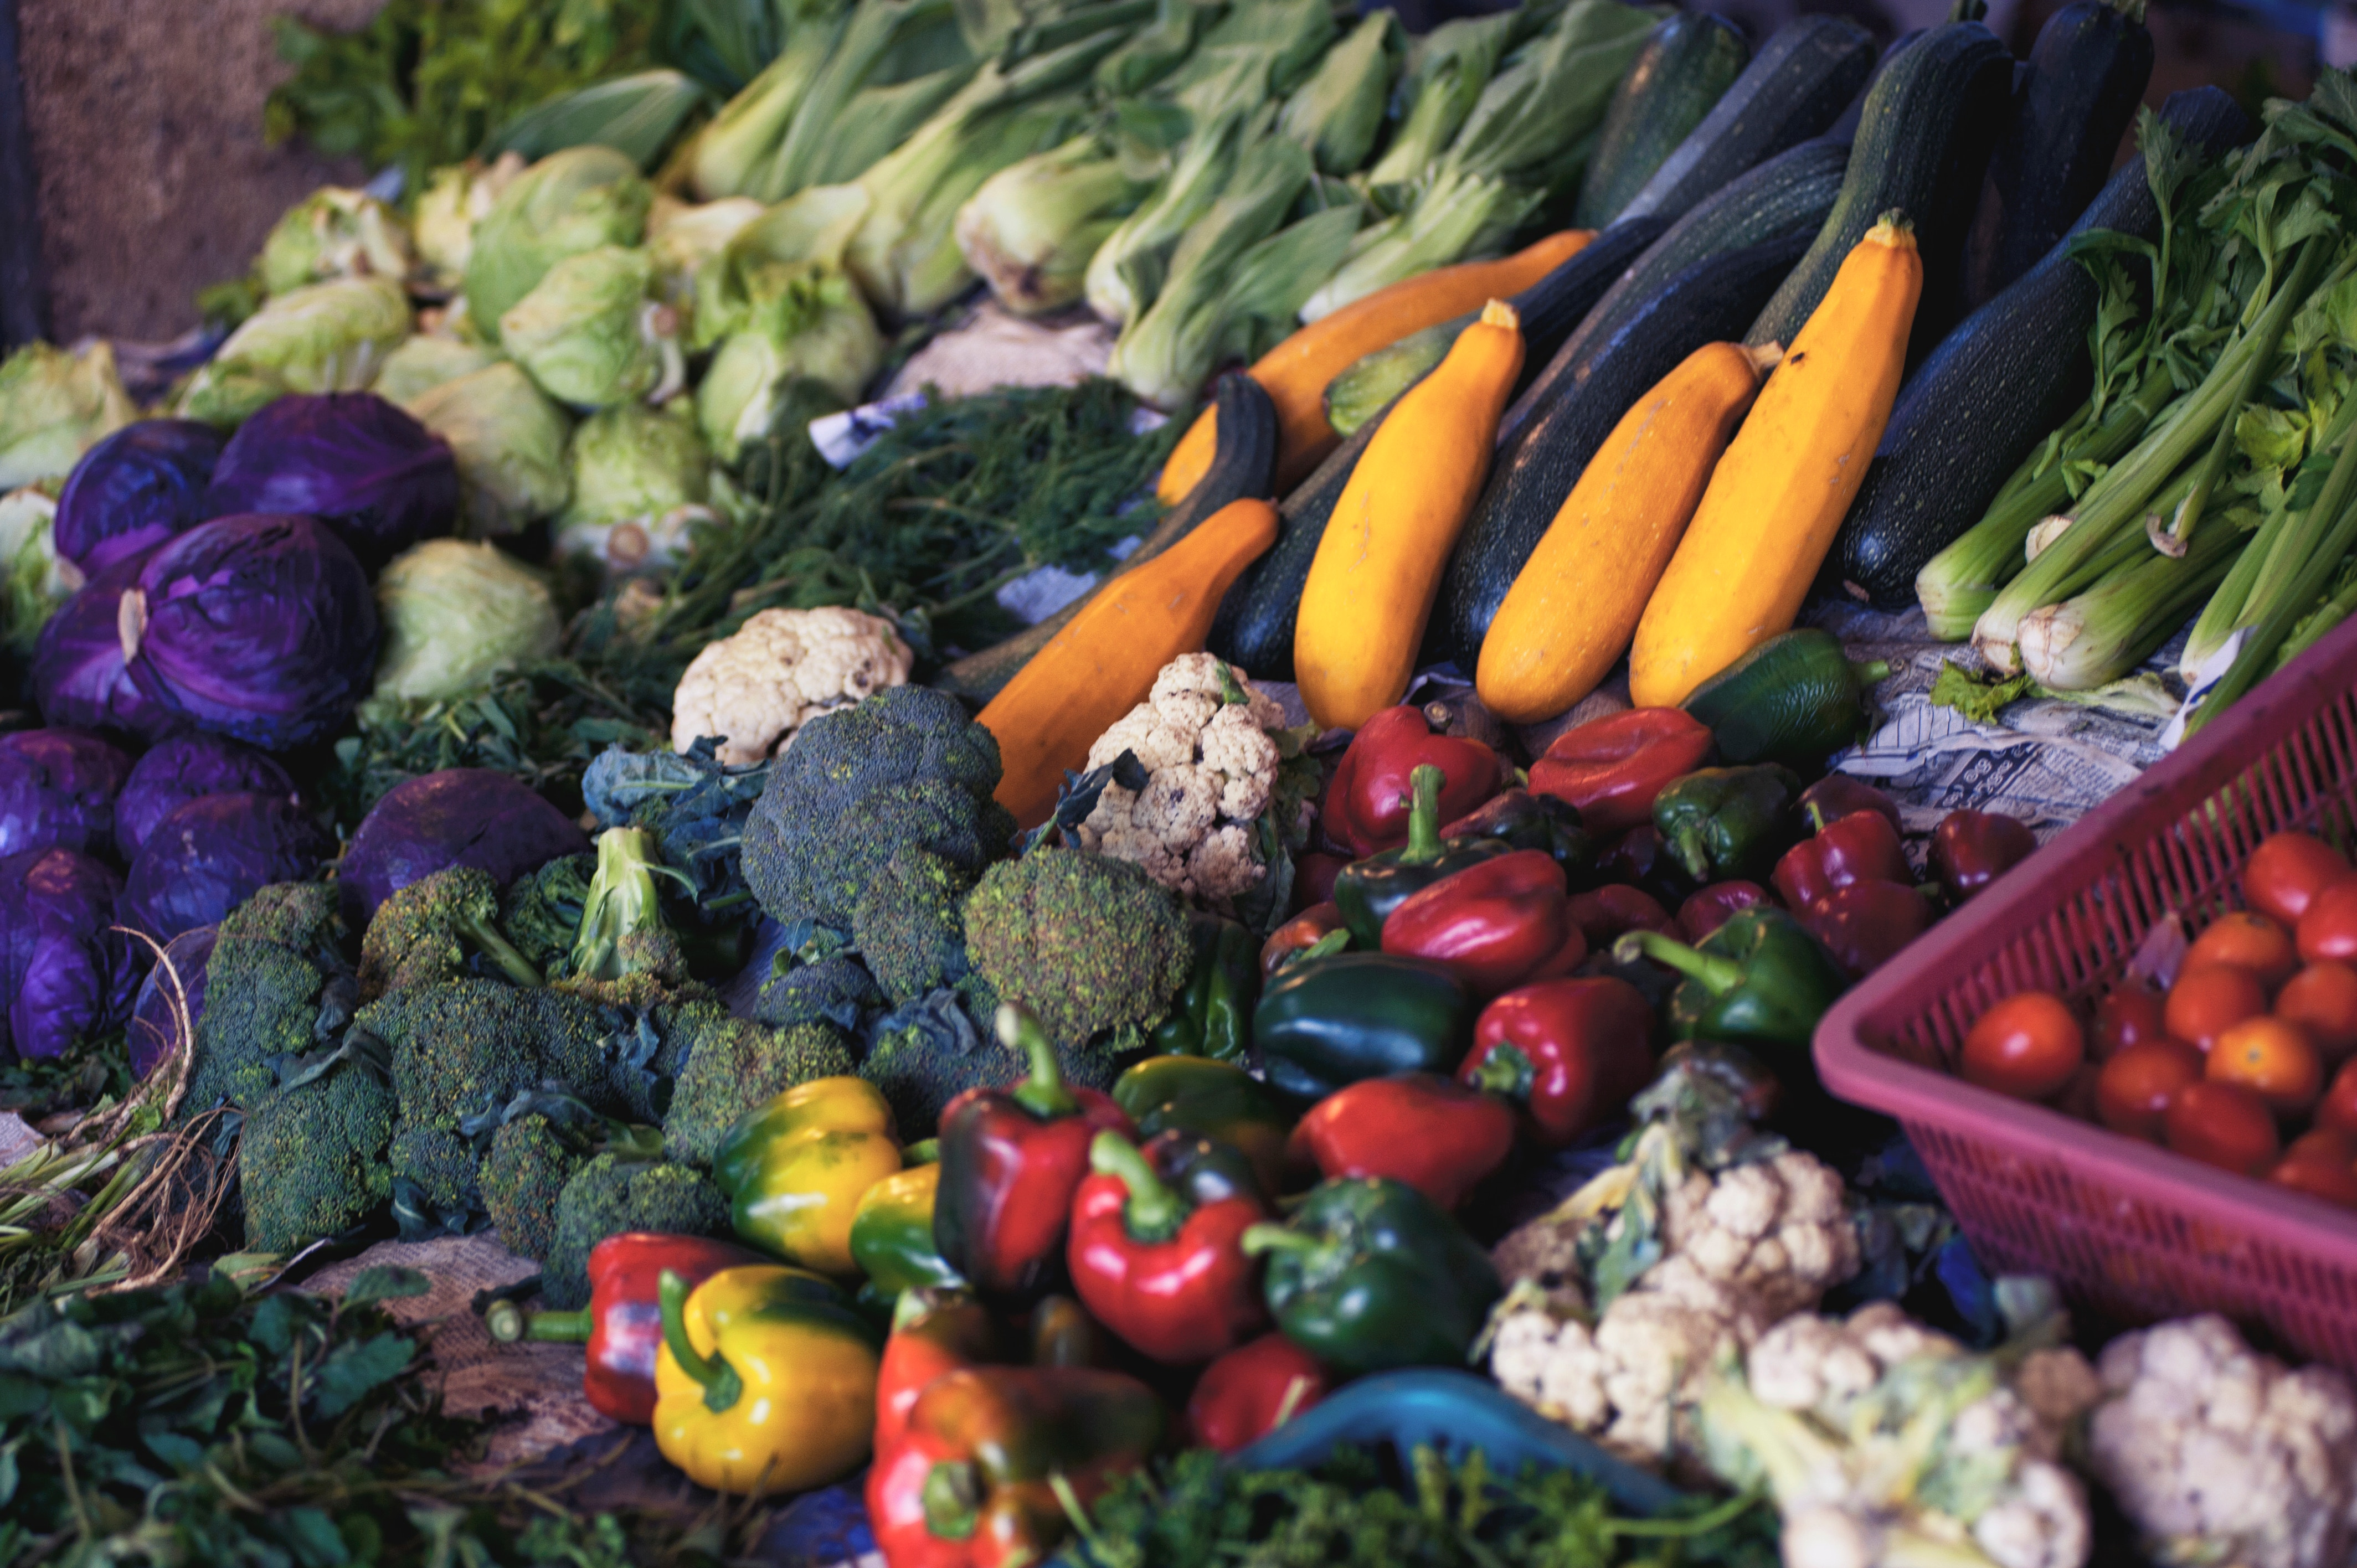 5 Foods You Should Consider Buying Organic